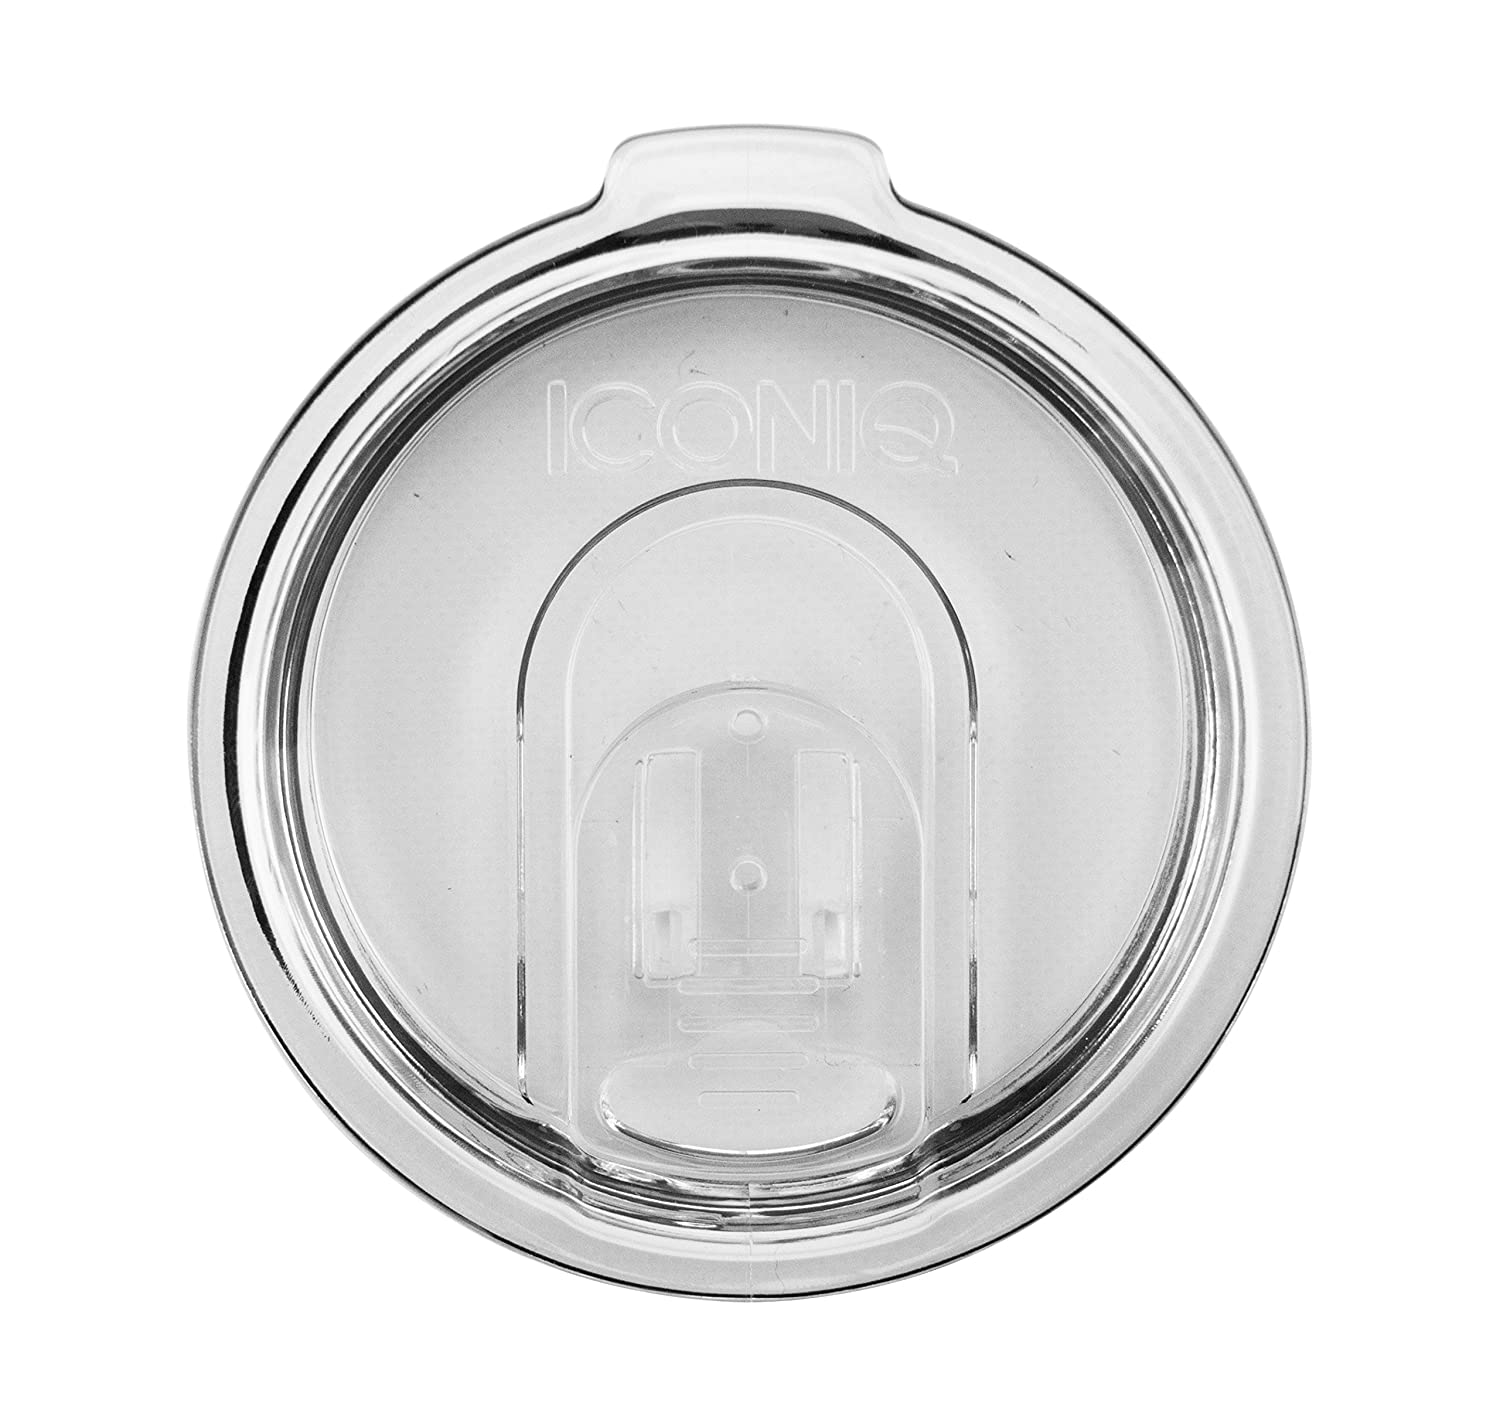 Replacement Lid with Retractable Sip Hole Cover for 20 Ounce Tumblers | Yeti Rambler Compatible (Clear)